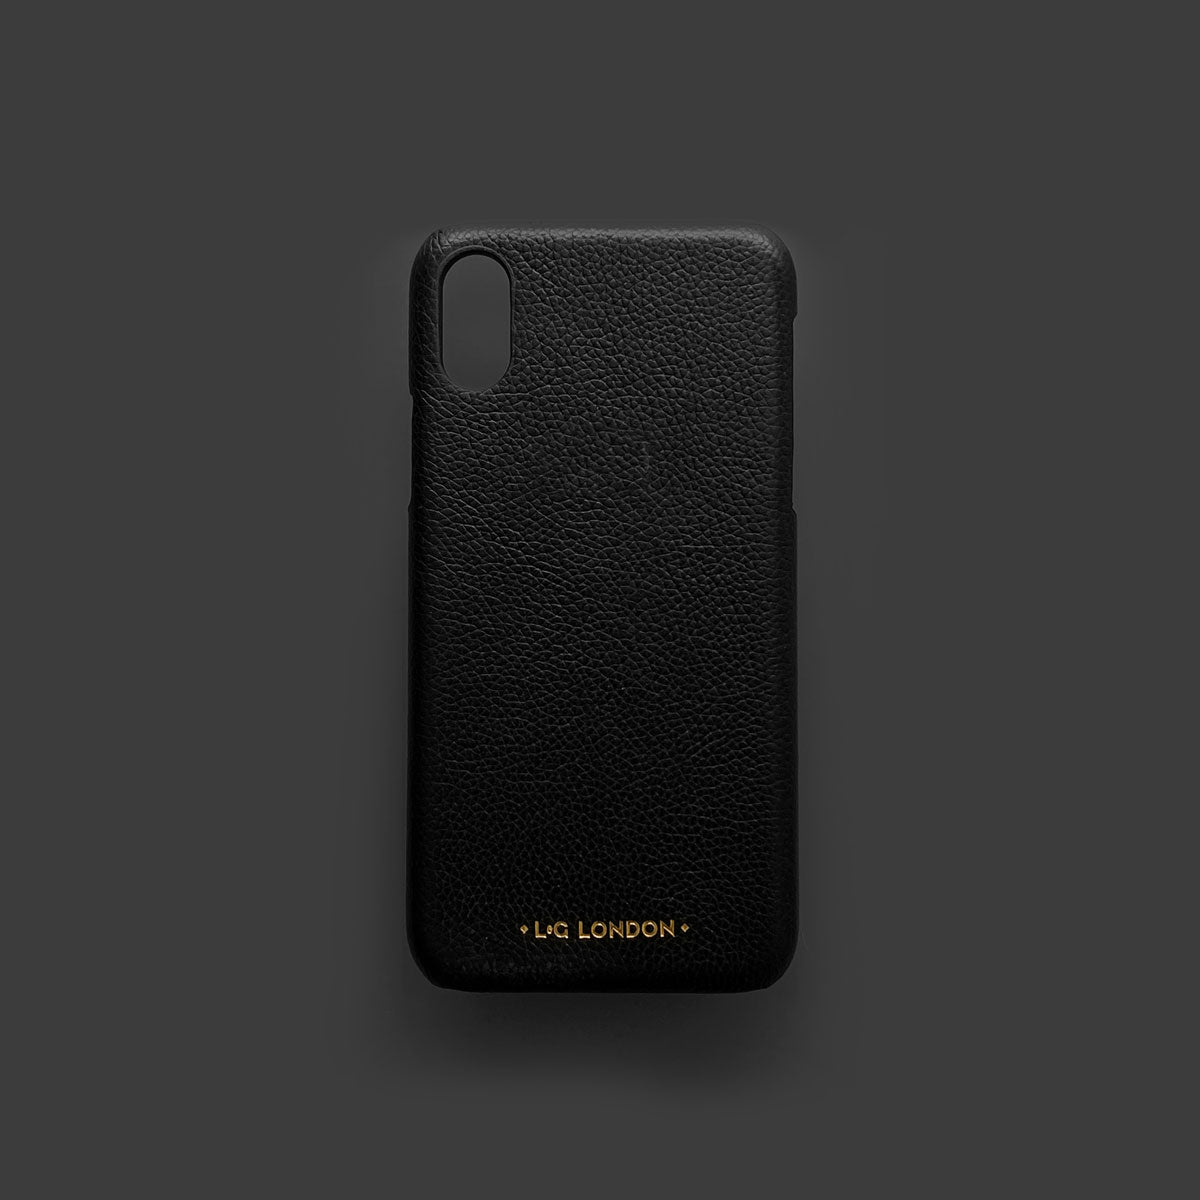 reputable site e69d4 ad437 L&G London Personalised Leather iPhone X Case